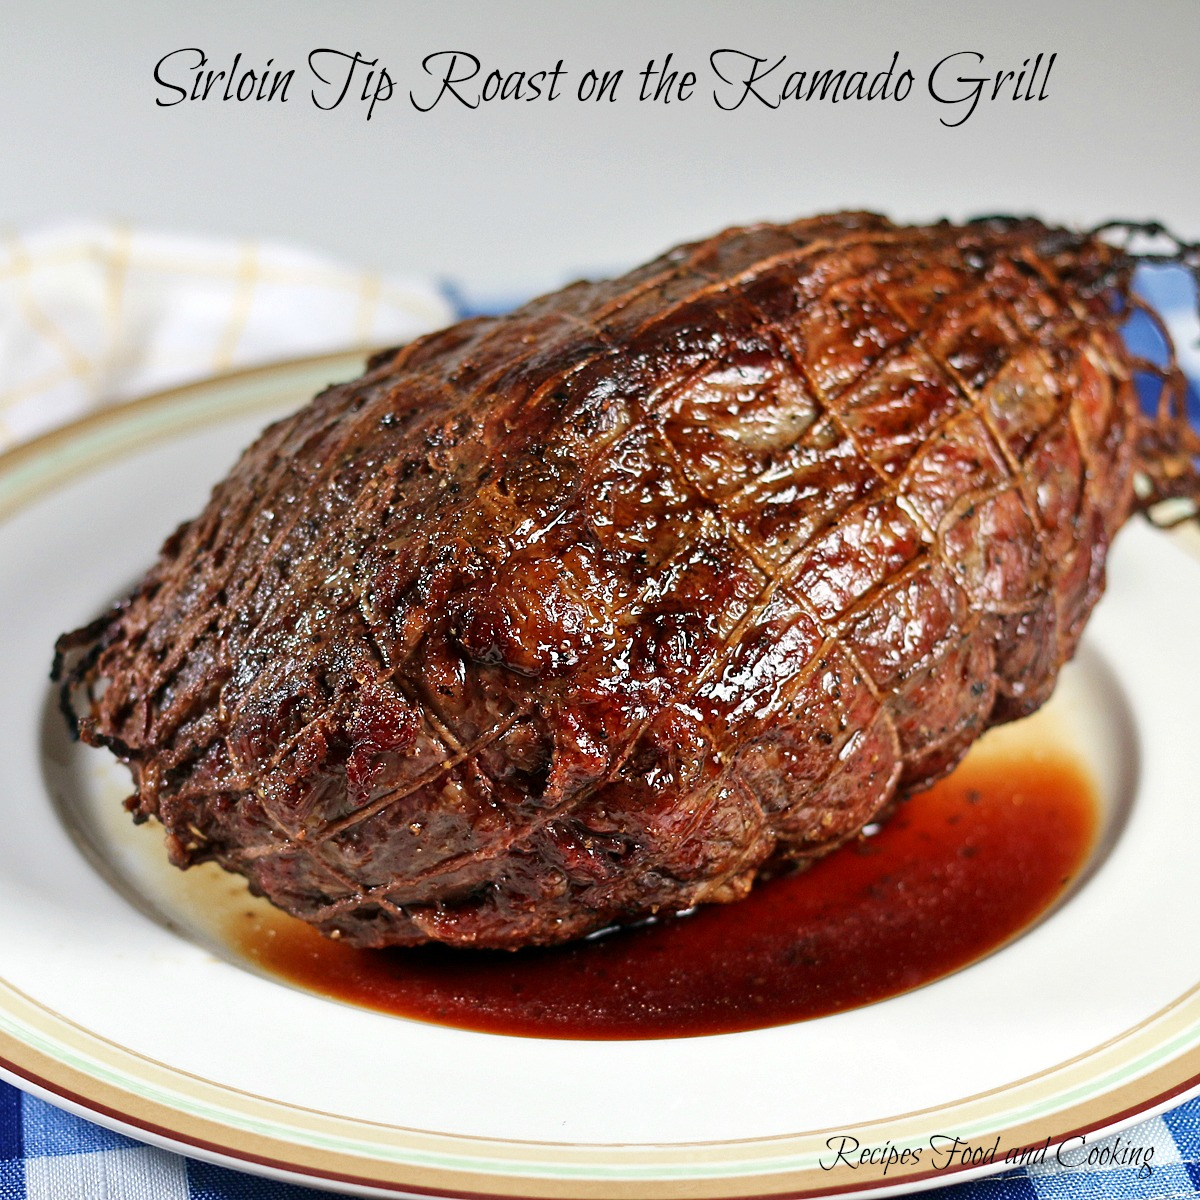 How to cook beef sirloin tip roast